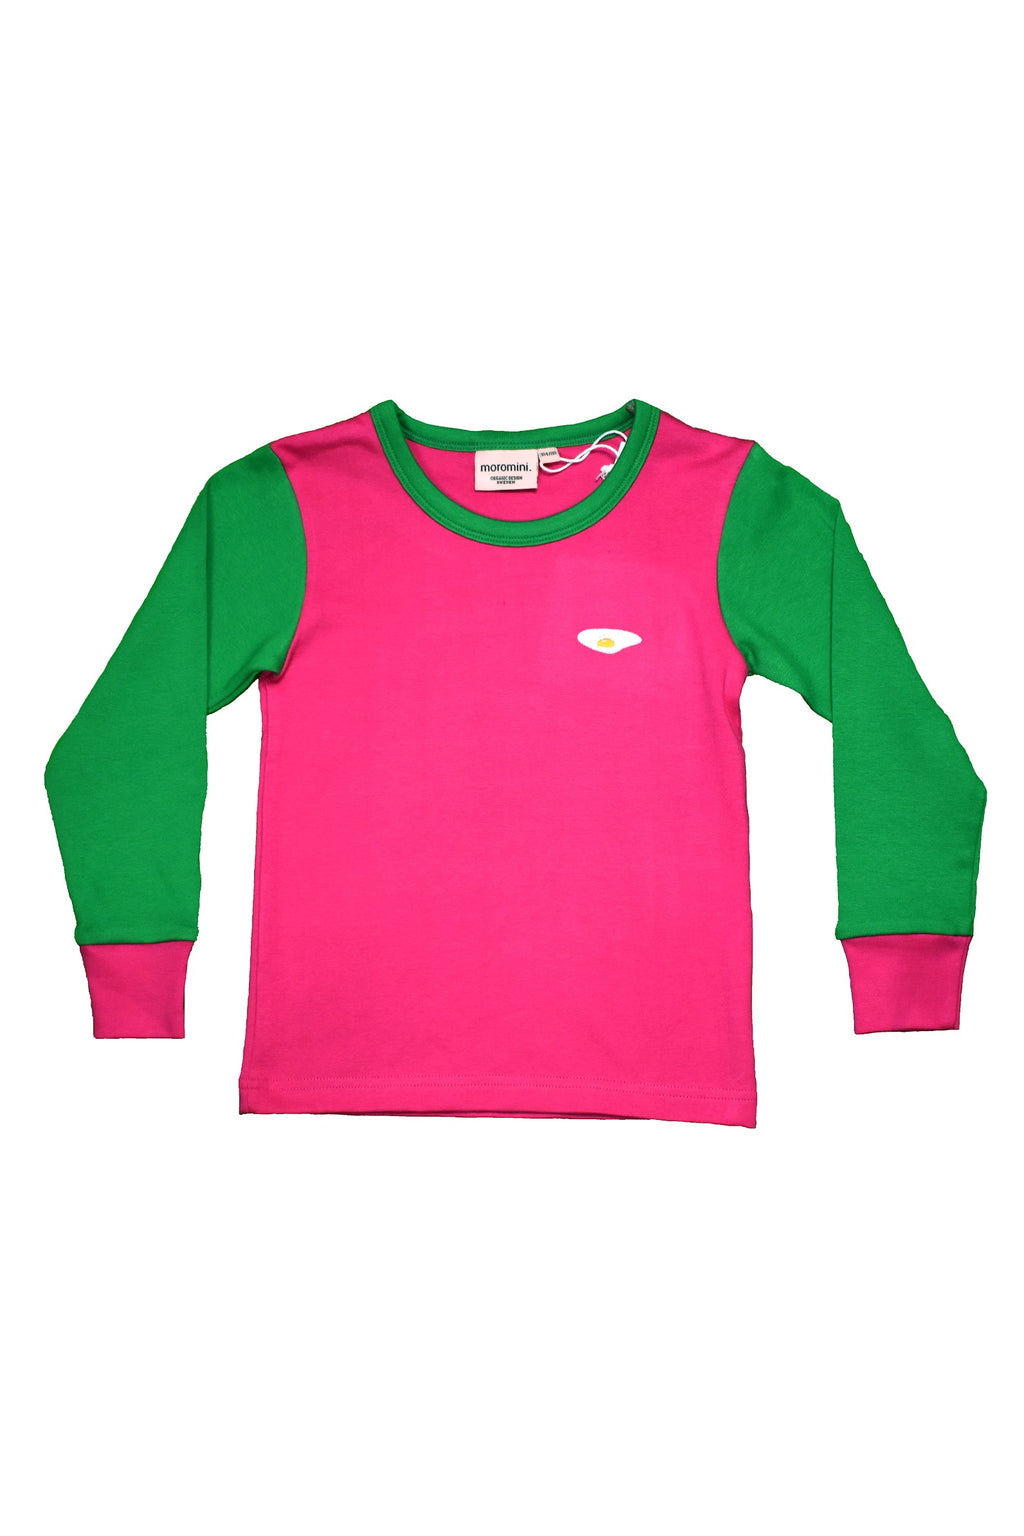 MOROMINI organic cotton ADULT long sleeved top PINK/GREEN